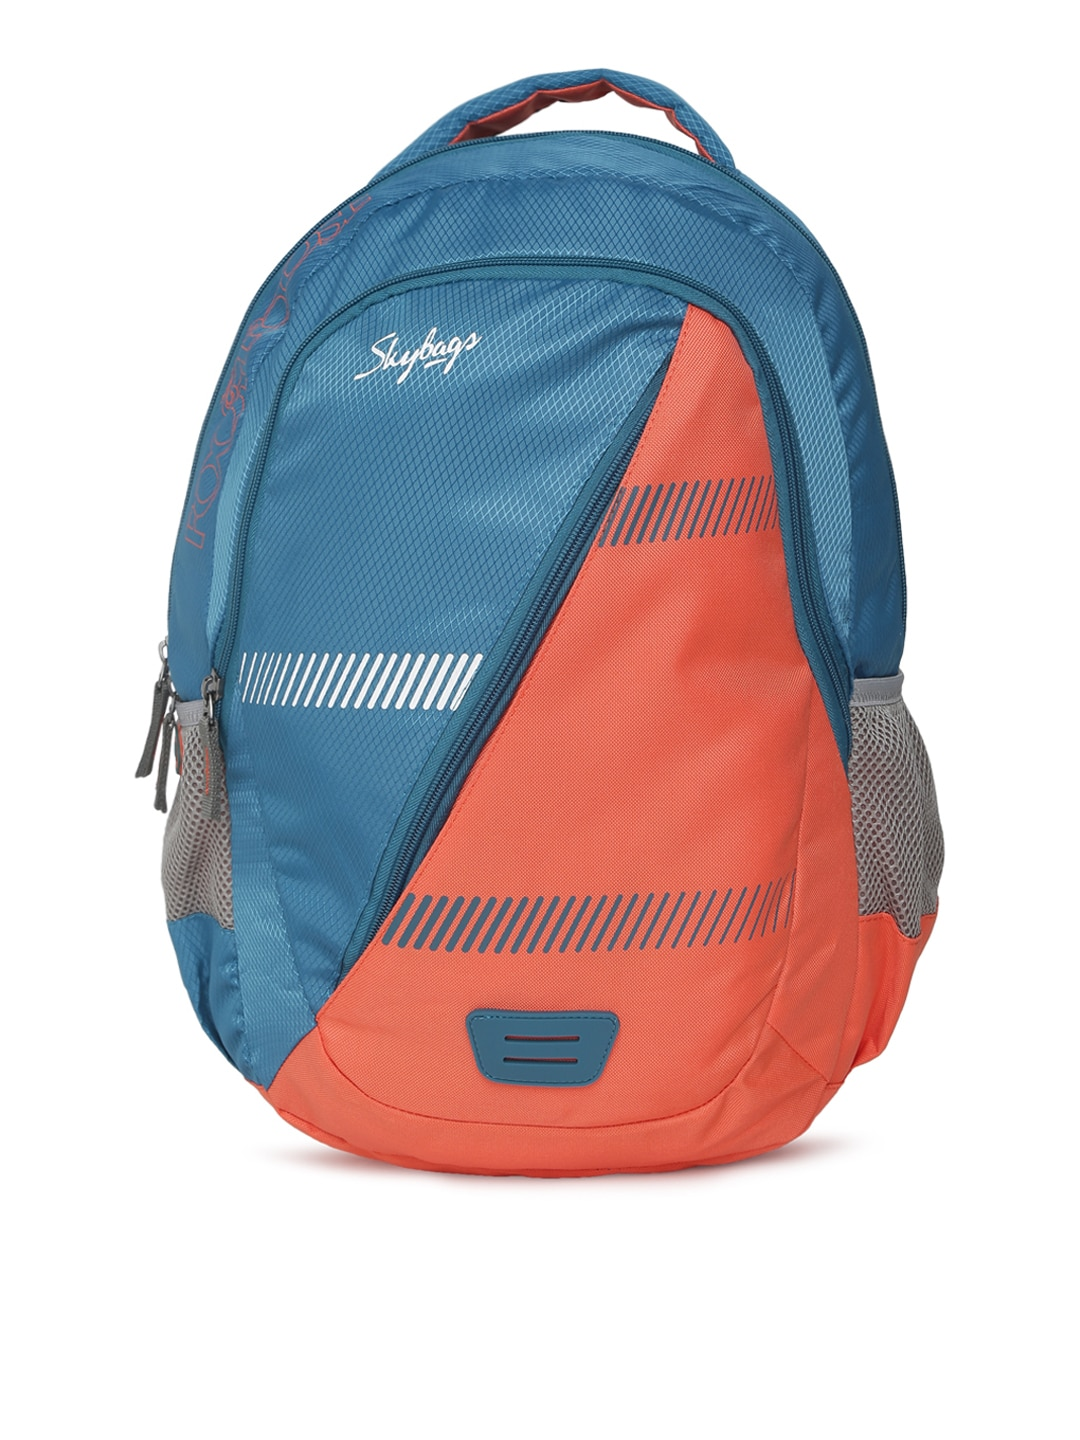 3cc61d3c330f Skybags Backpacks - Shop Online for Skybags Backpacks in India